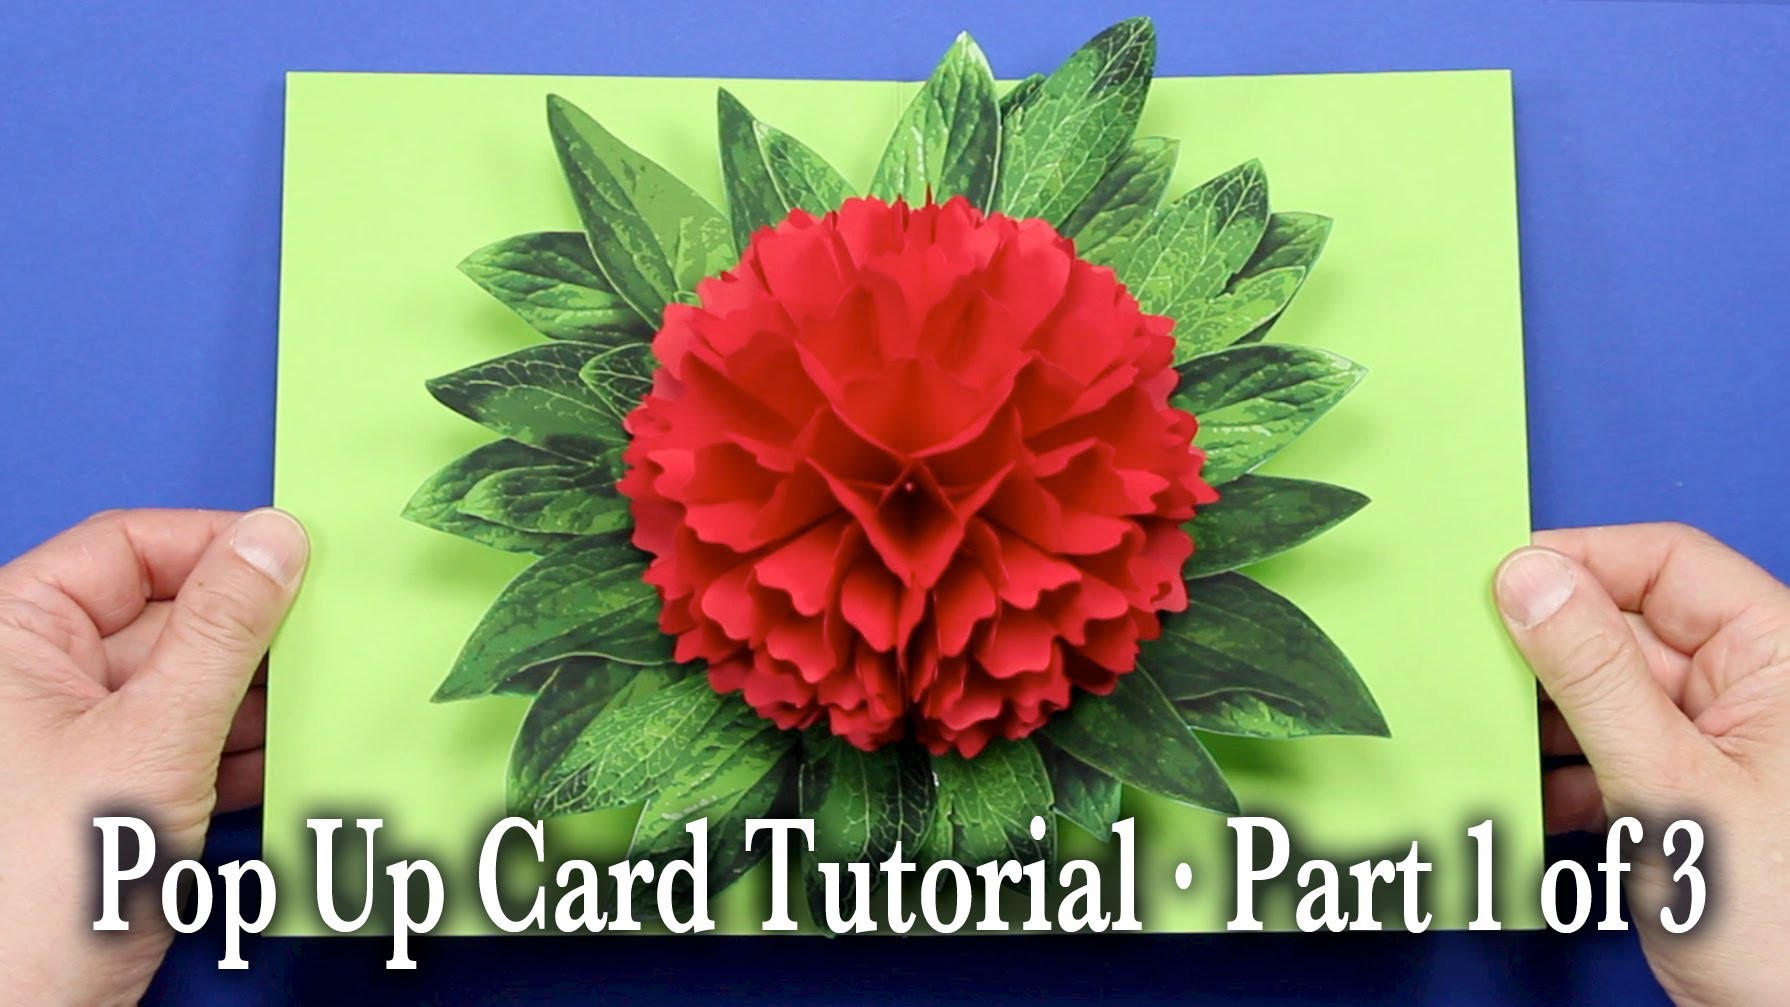 Flower Pop Up Card Tutorial Part 1 of 3